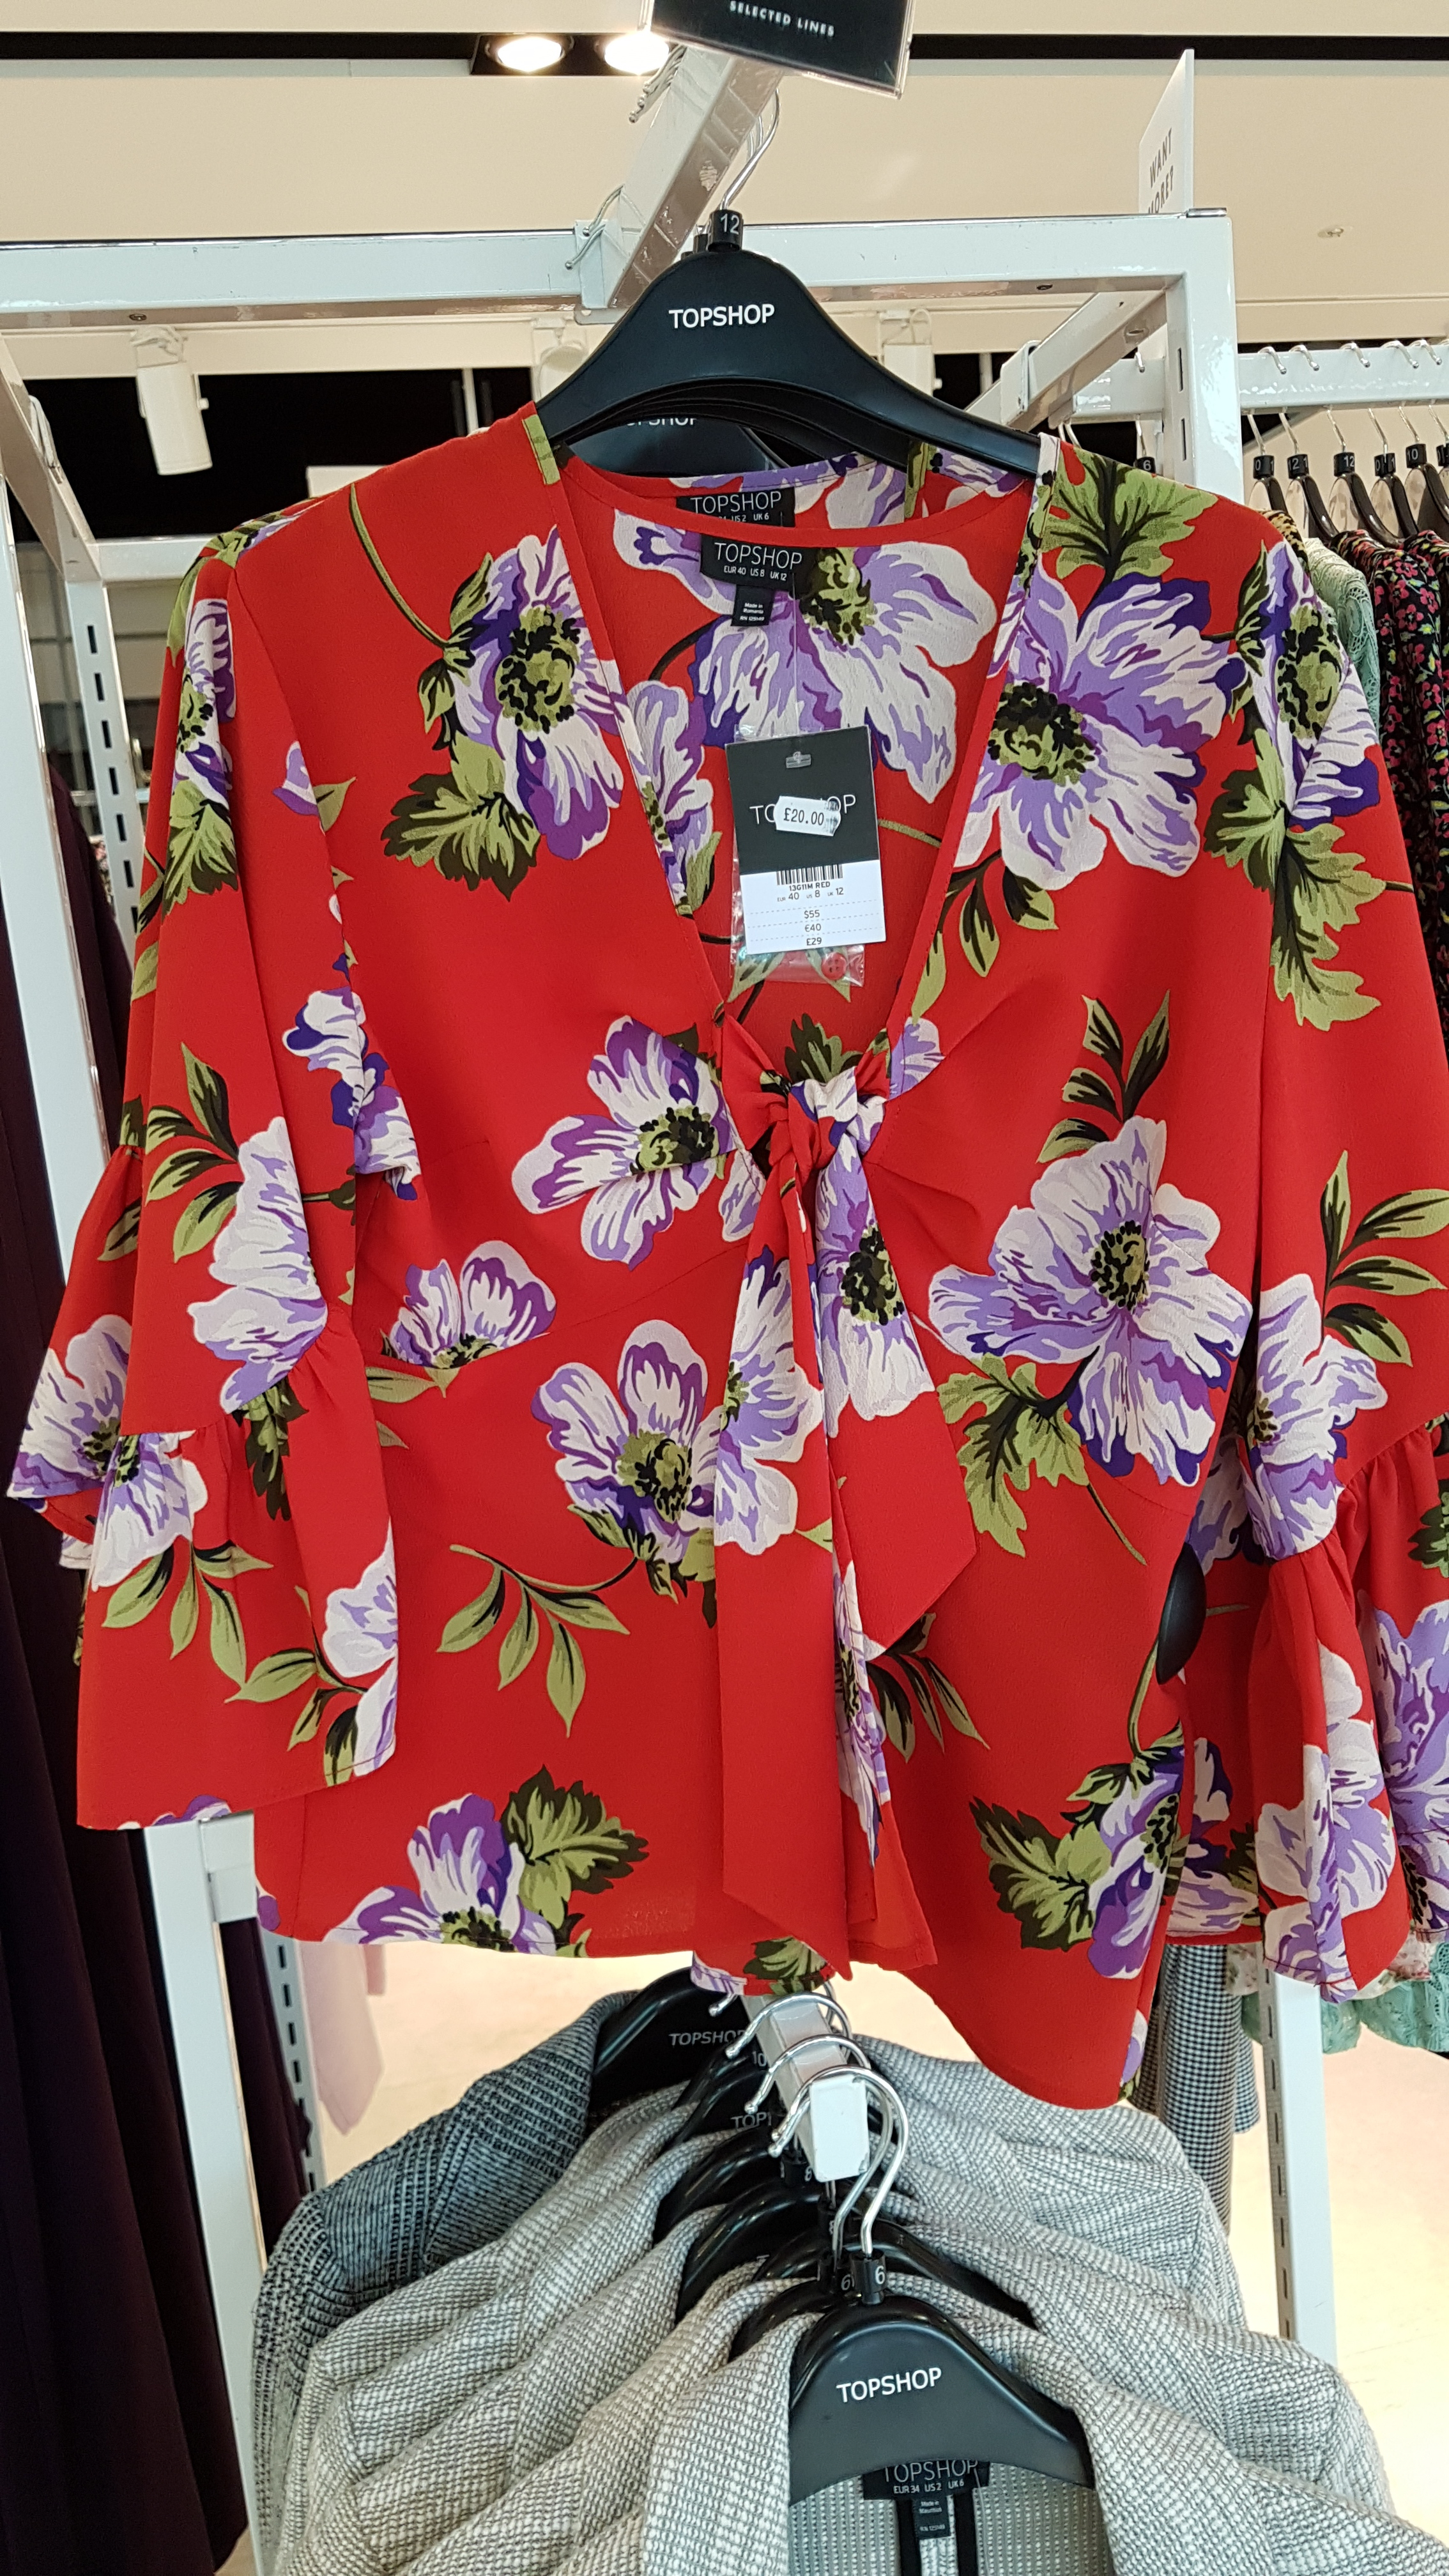 Sian-victoria-topshop-floral-red-blouse.jpg